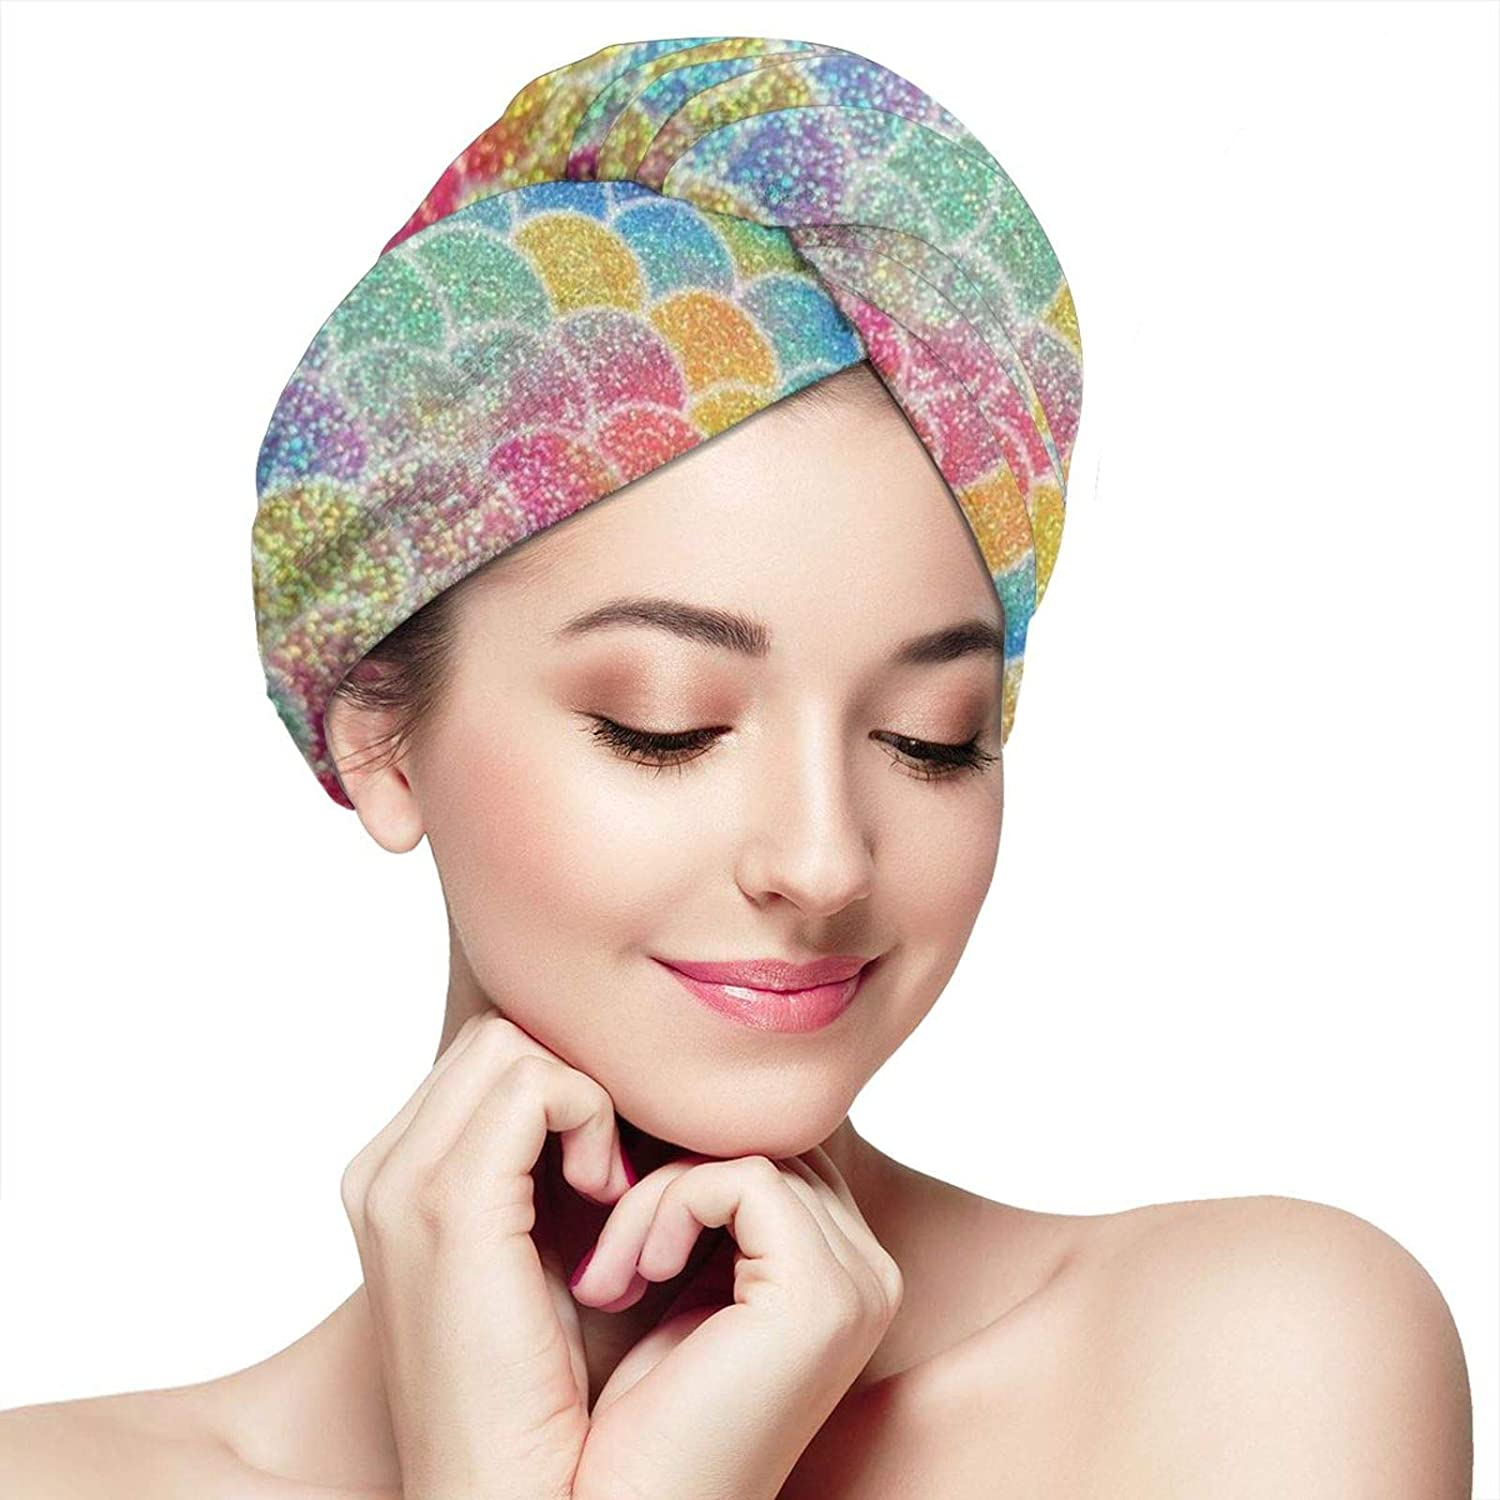 NiYoung Women Girls Original Hair Towel Twist Turban with Button Design Fast Drying Hair Caps for Drying Curly, Long & Thick Hair, Colorful Mermaid Fish Scales 11